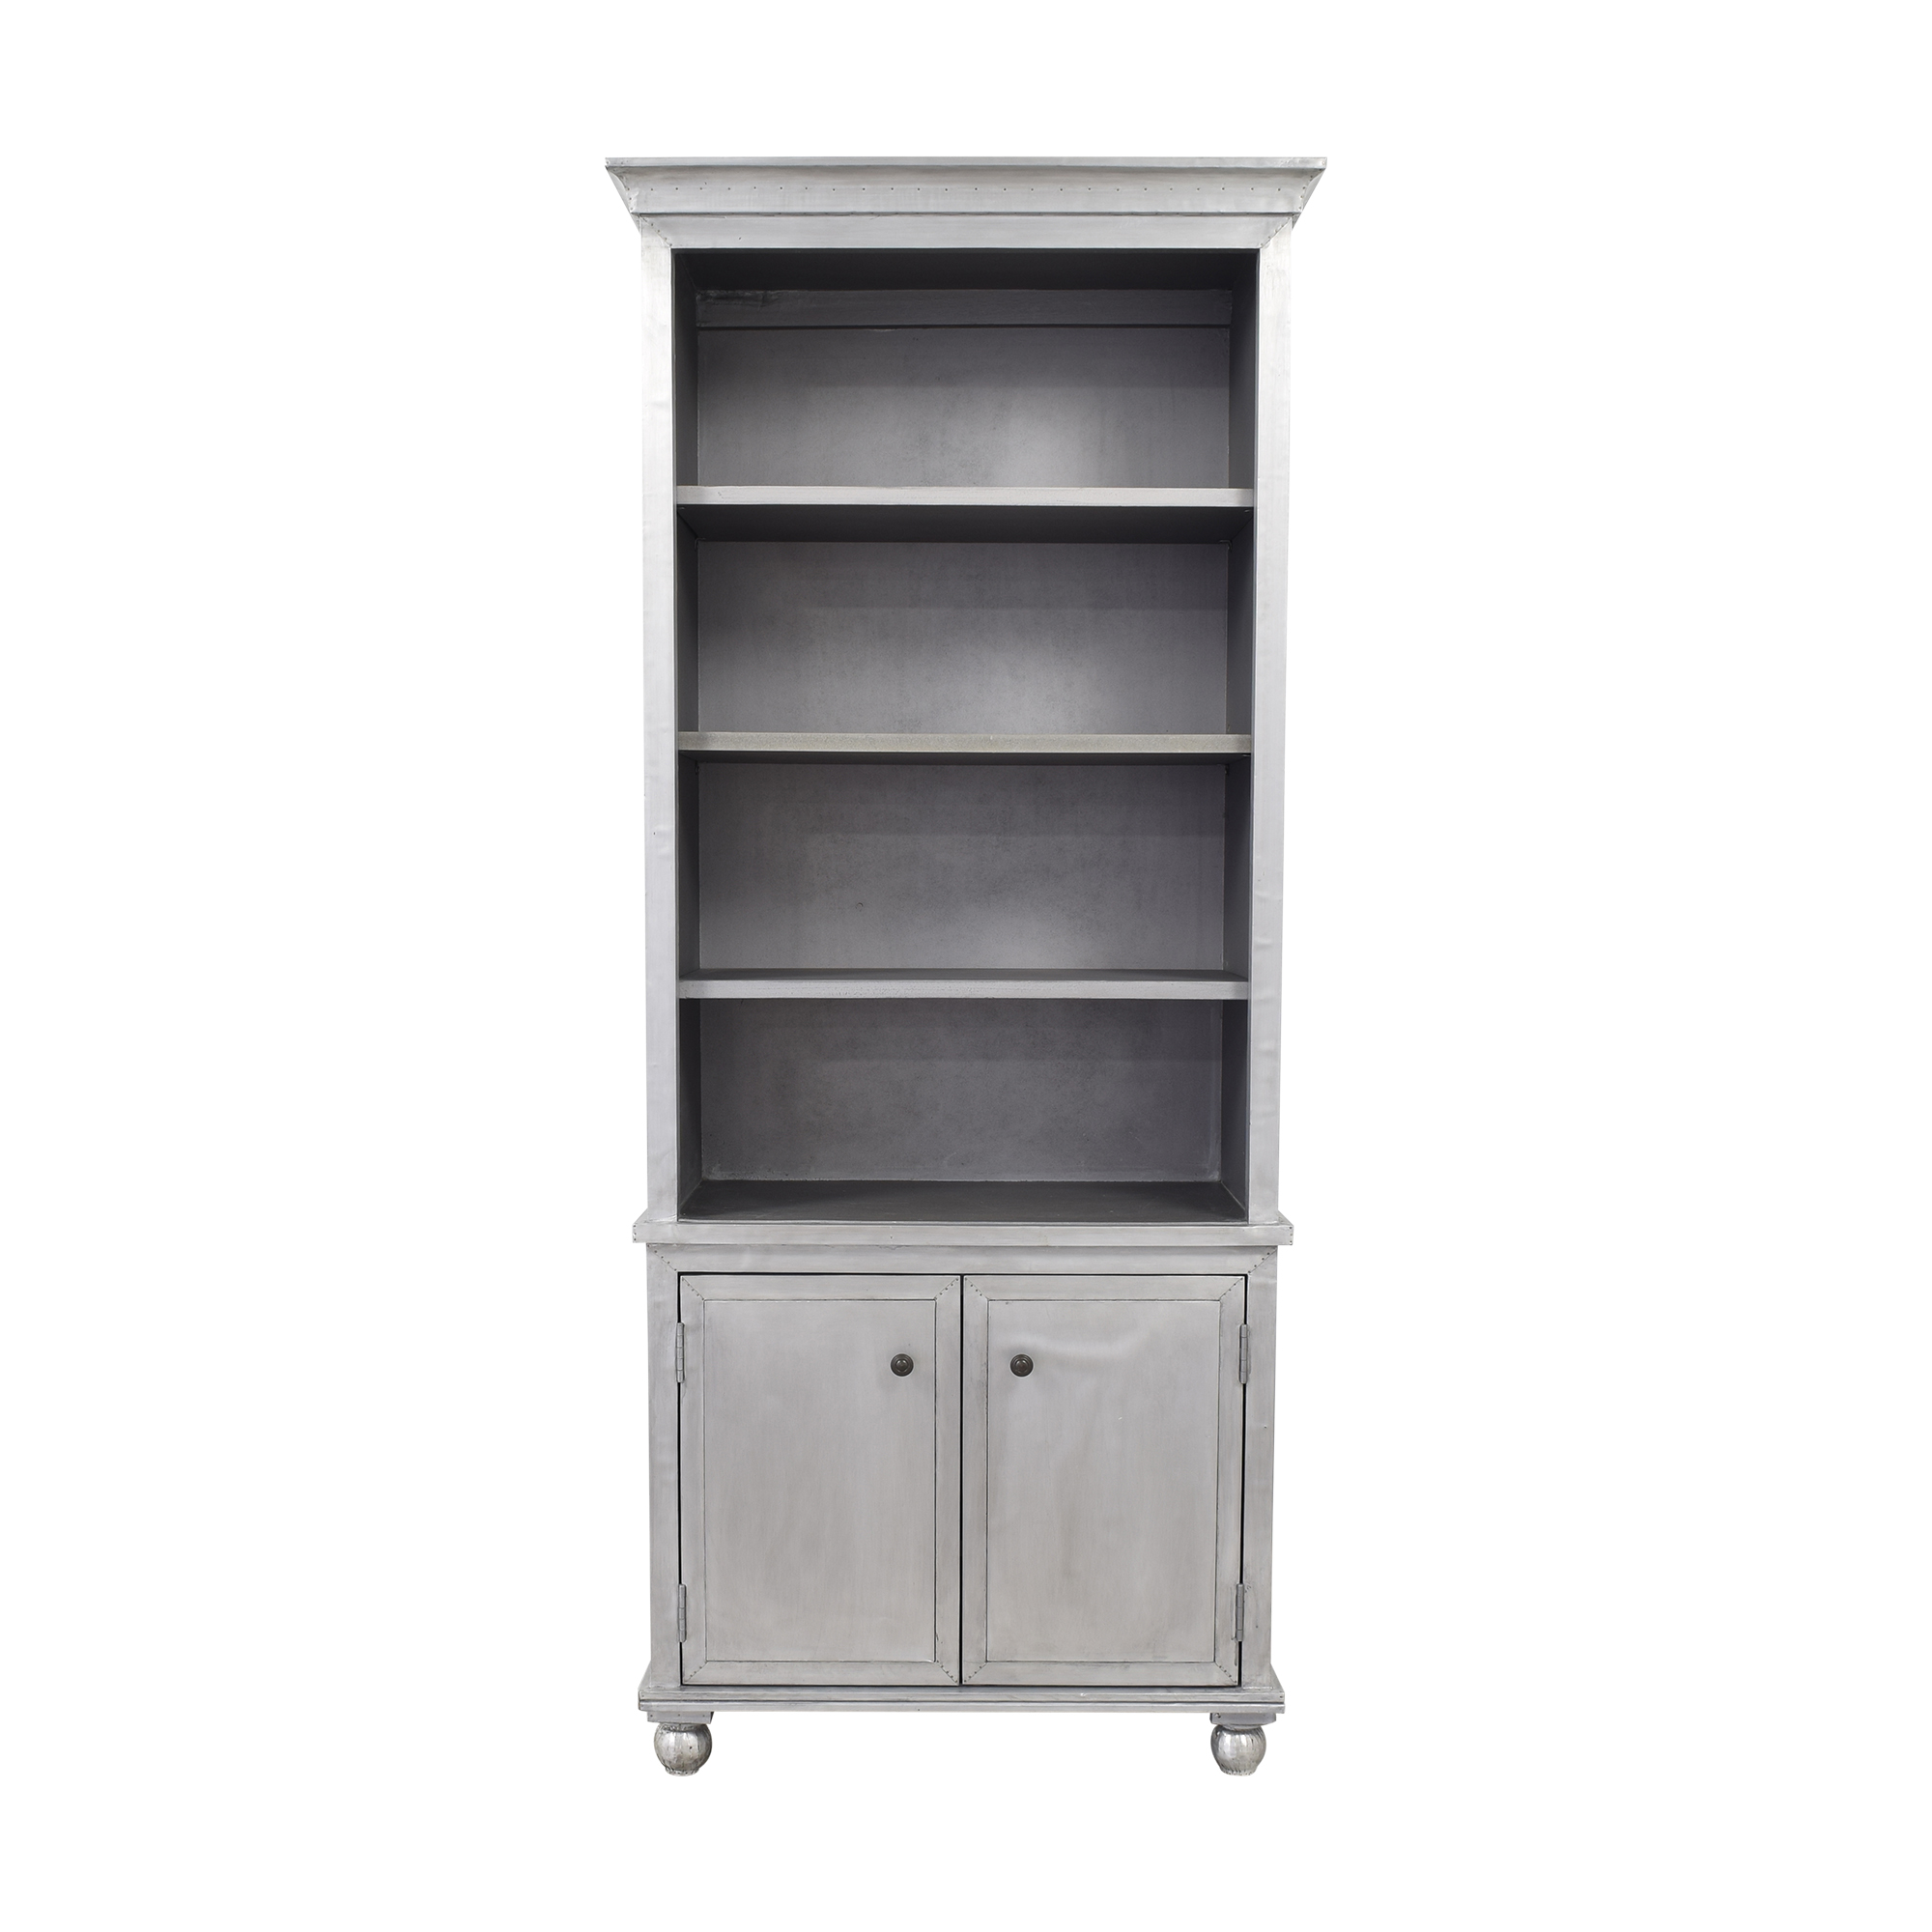 Restoration Hardware Restoration Hardware Annecy Sideboard with Open Hutch Bookcases & Shelving